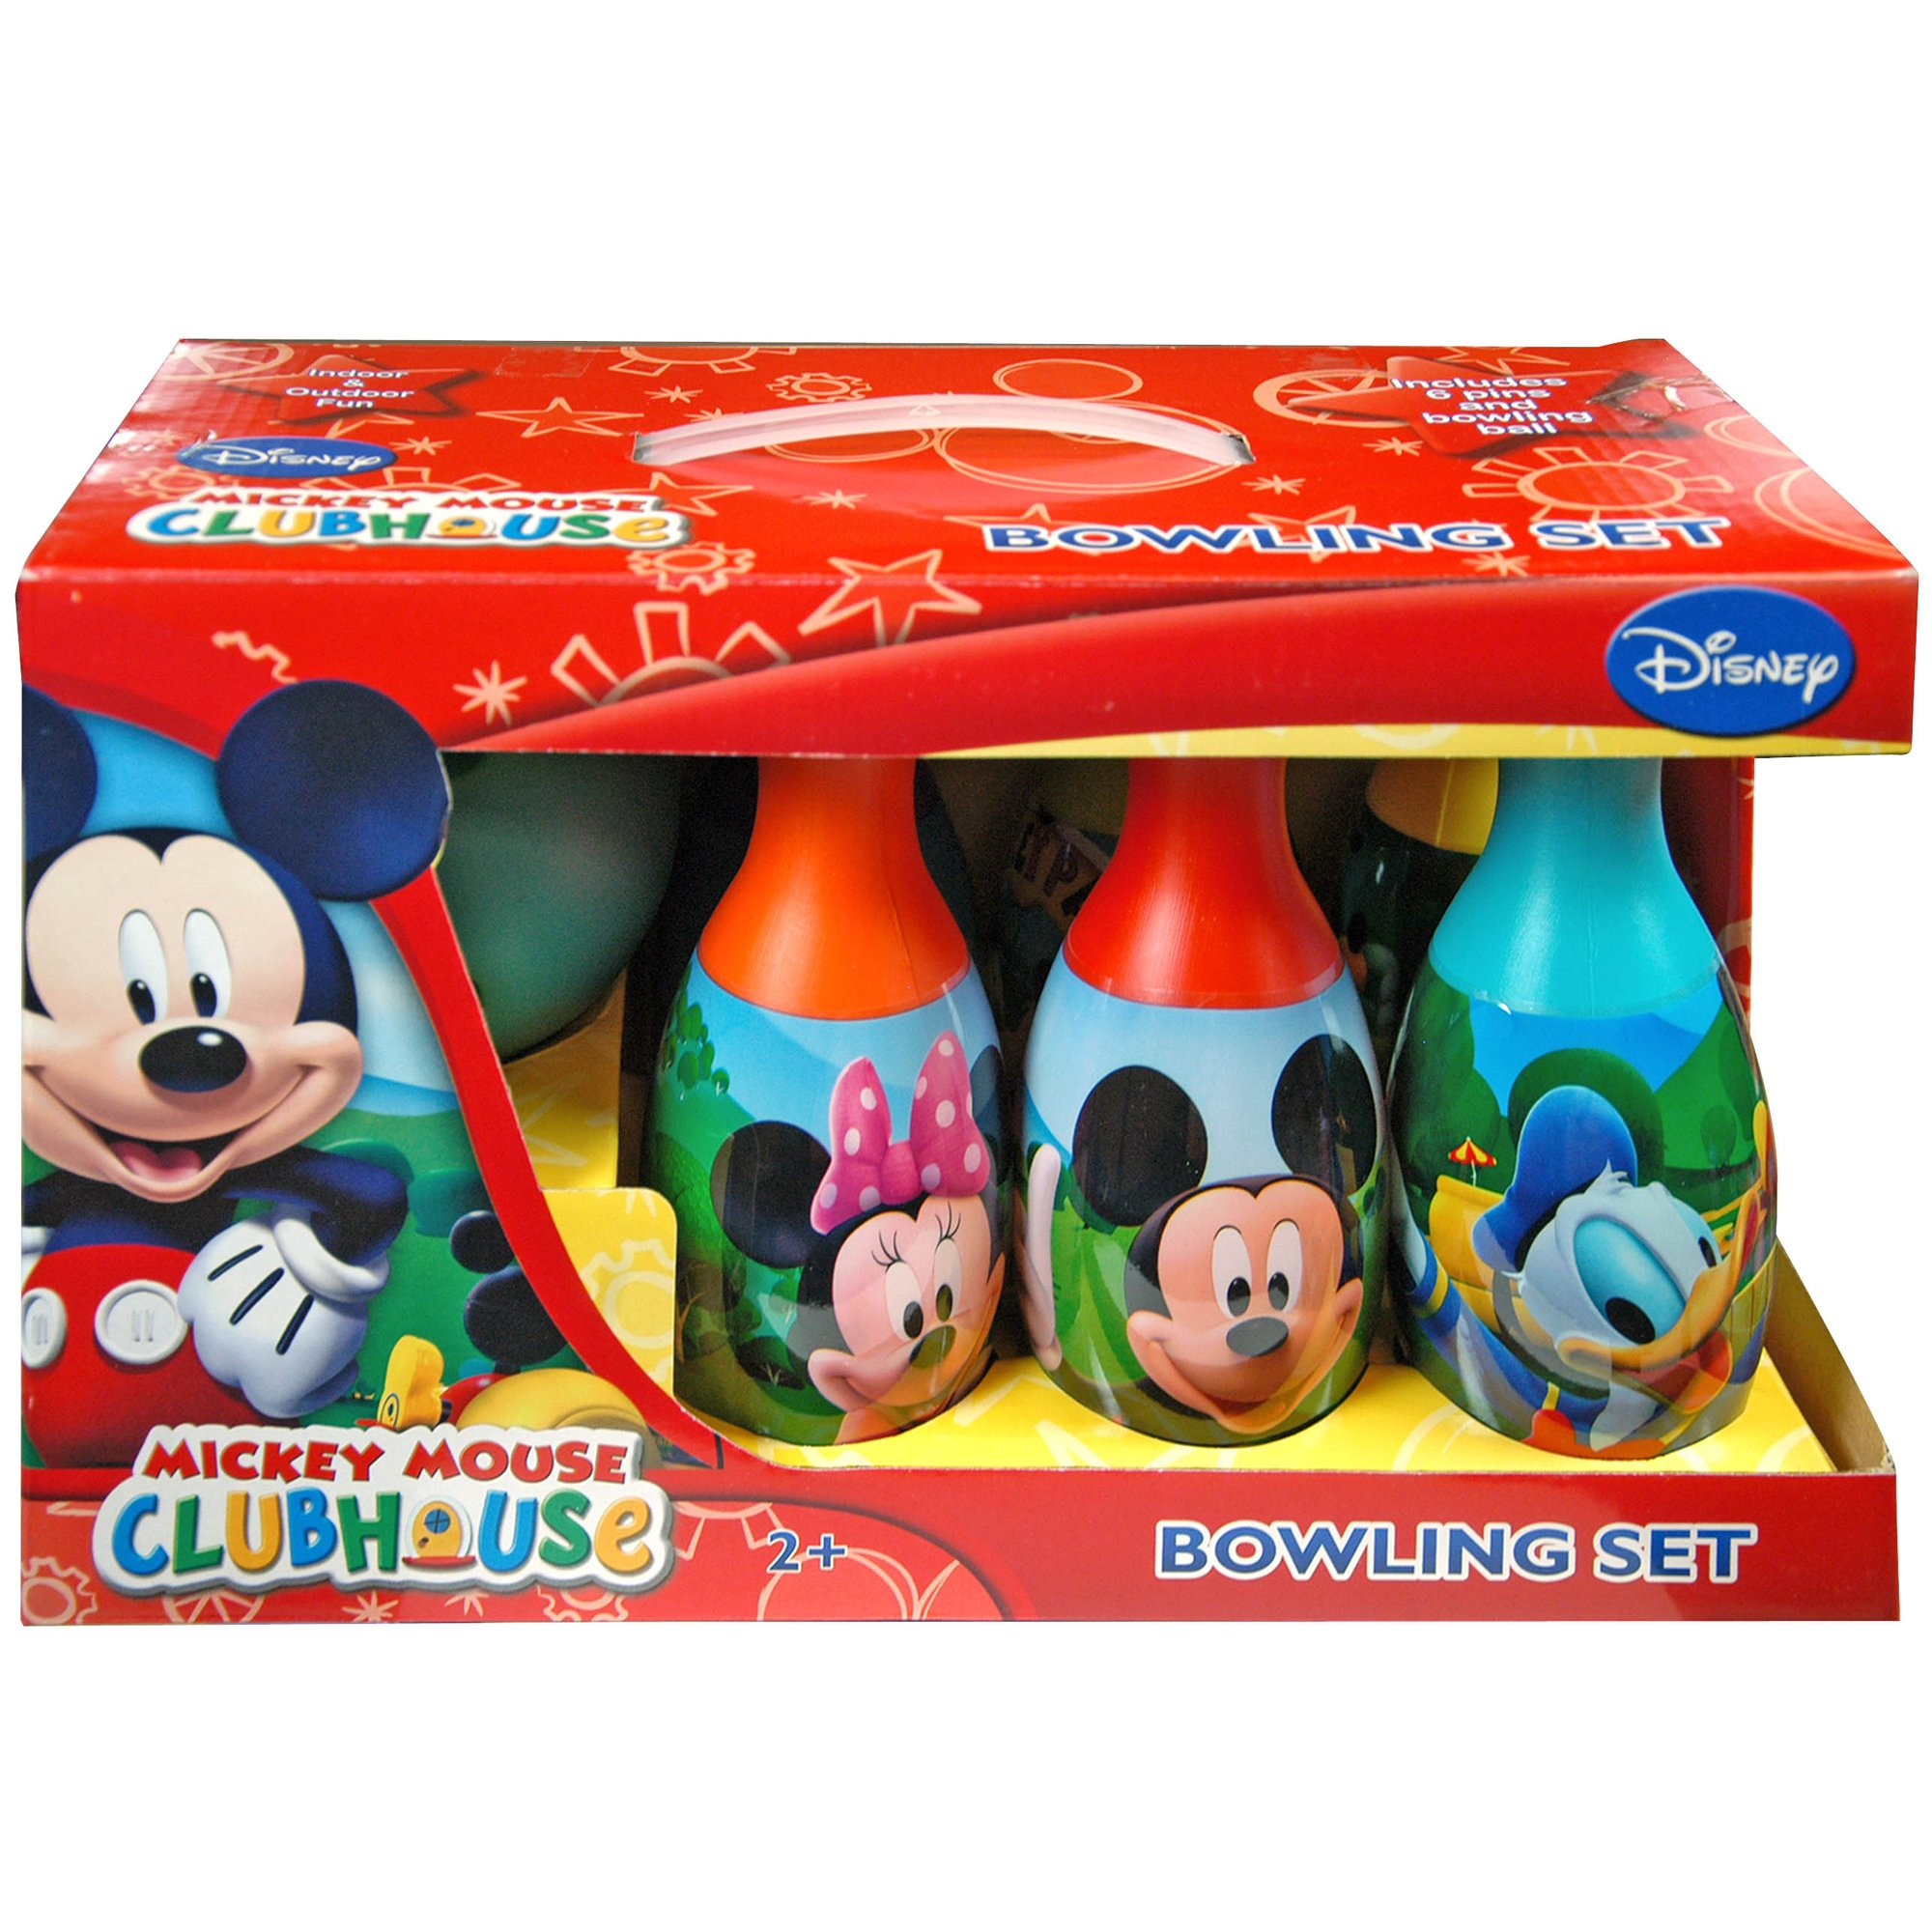 Disney Mickey Mouse Clubhouse Bowling Play Set